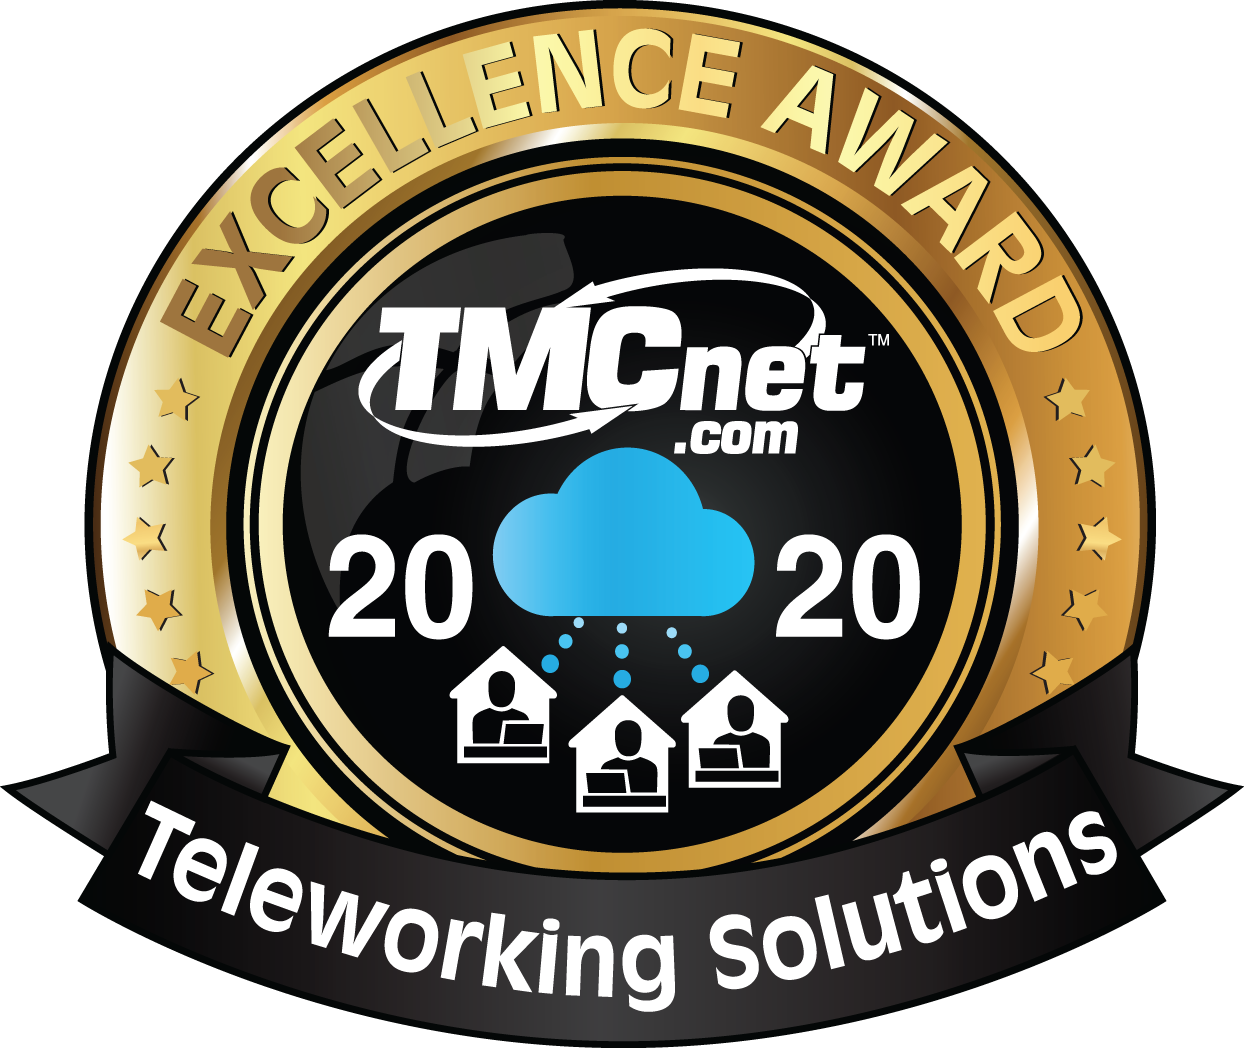 TMCnet.com Excellence Award for Teleworking Solutions with Sangoma Meet™